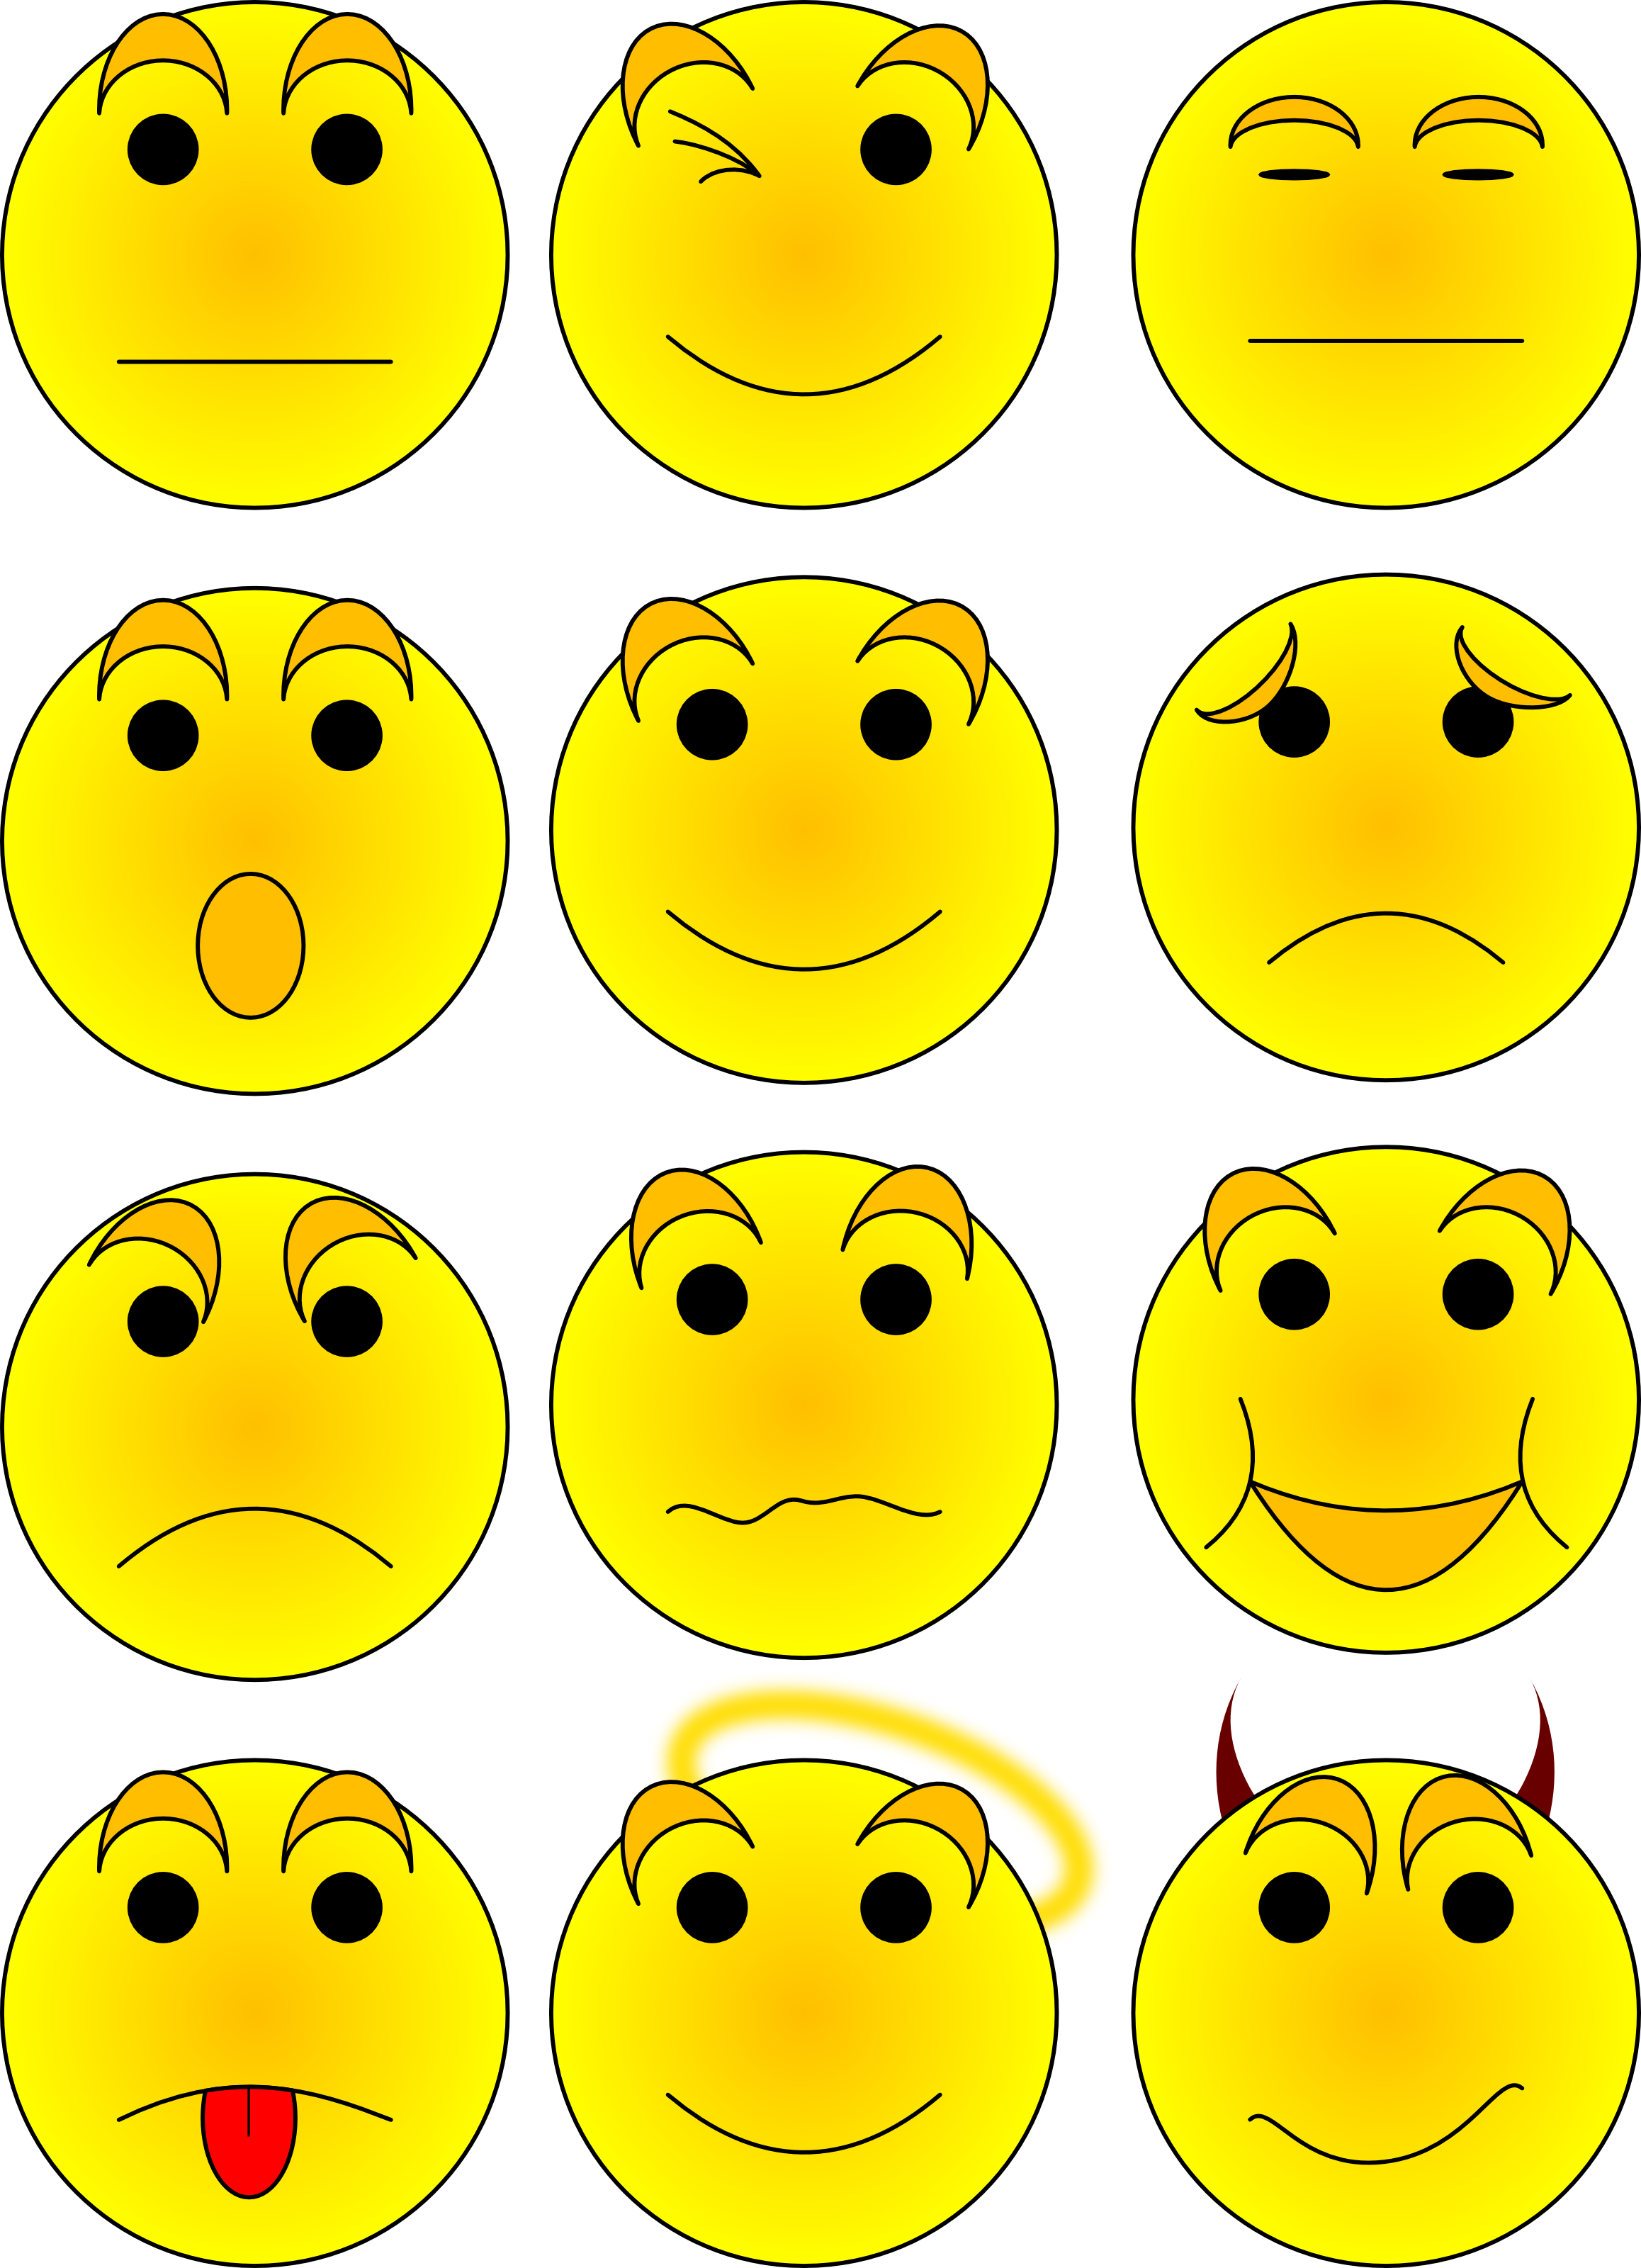 Expression clipart 20 free Cliparts | Download images on ...